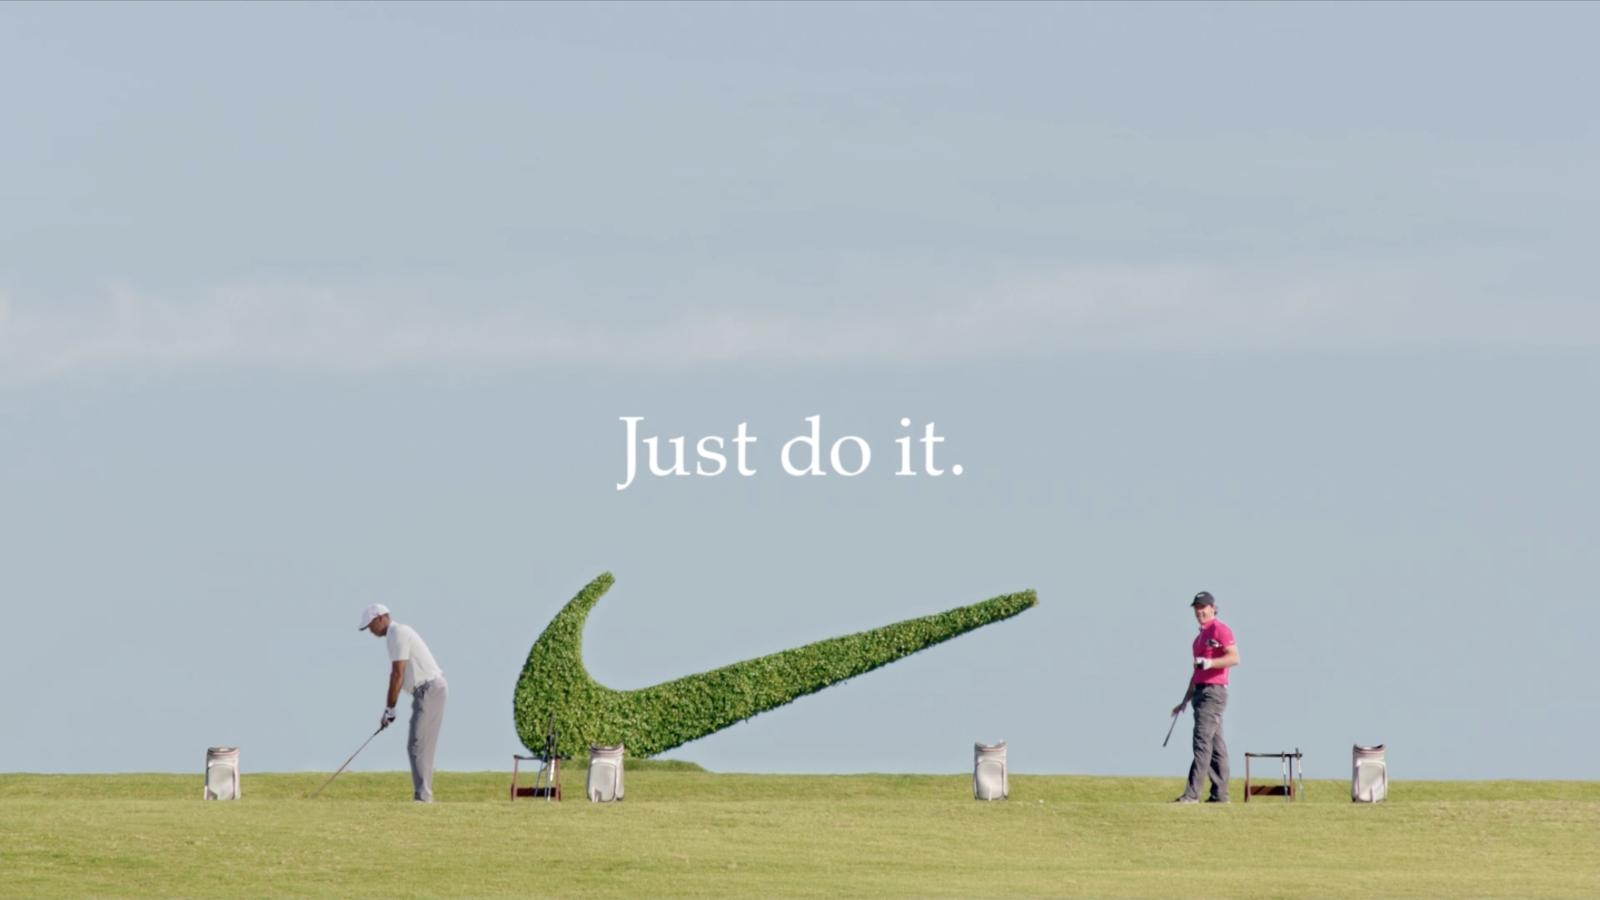 Tiger Woods And Rory McIlroy Star In New Nike Golf Ad